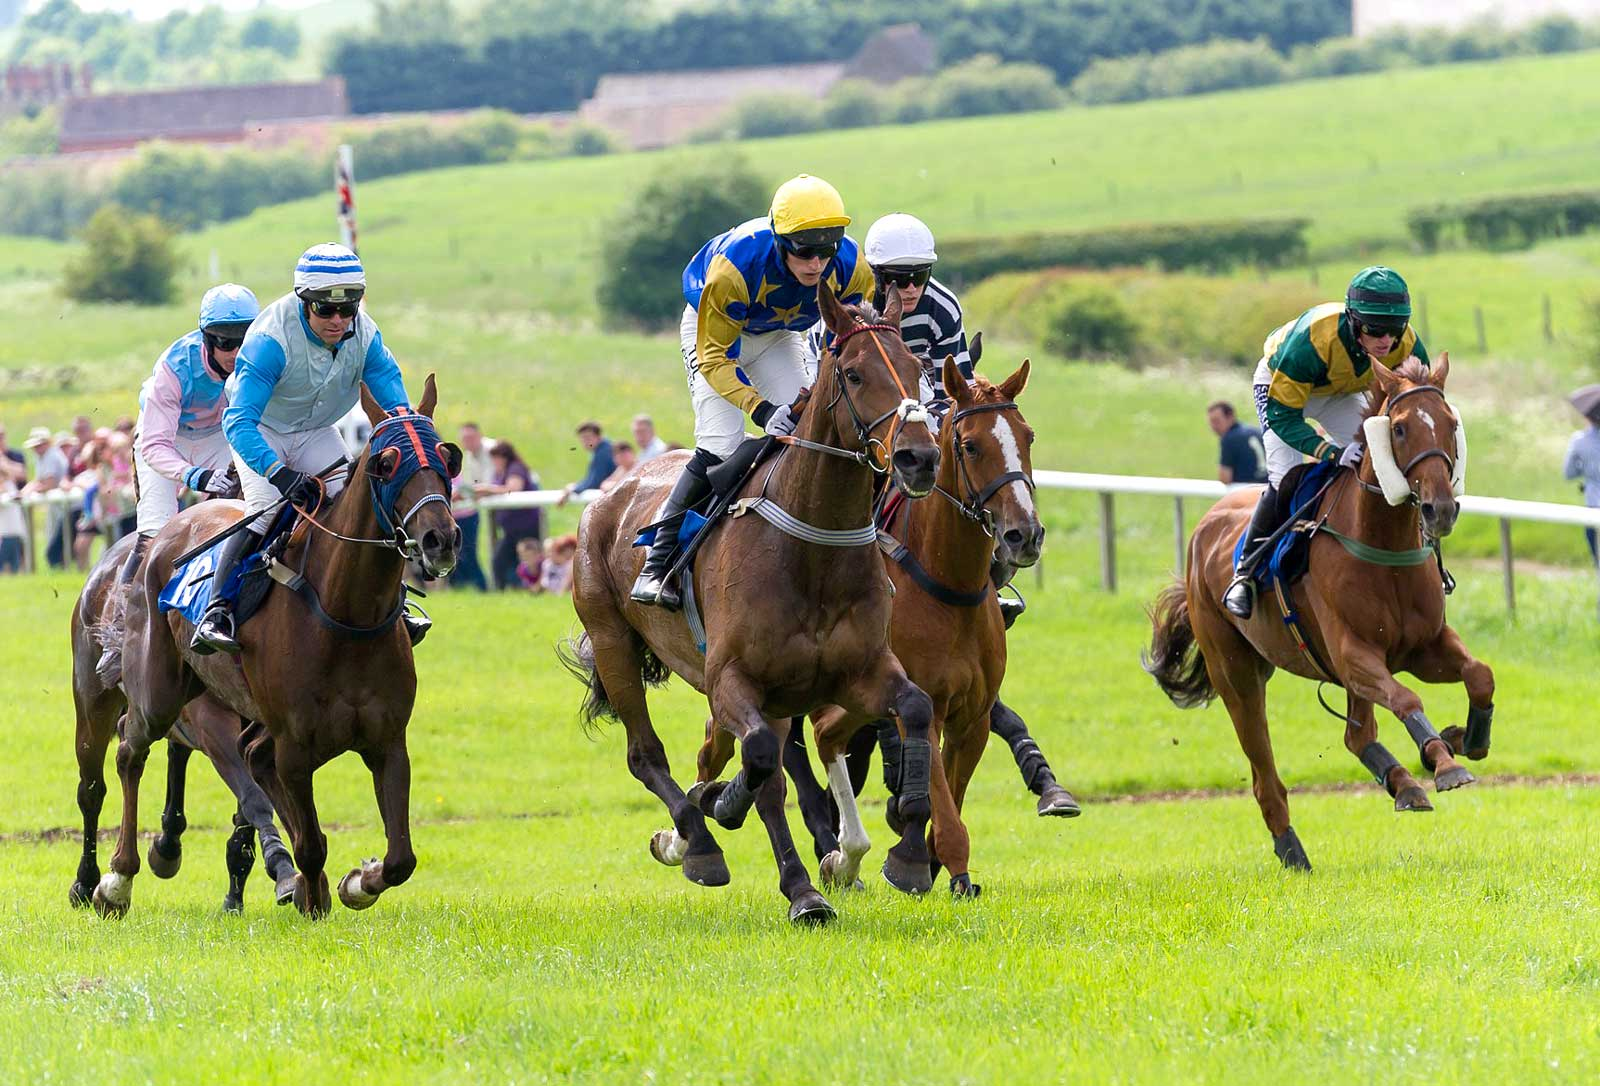 Horse racing at Garthorpe